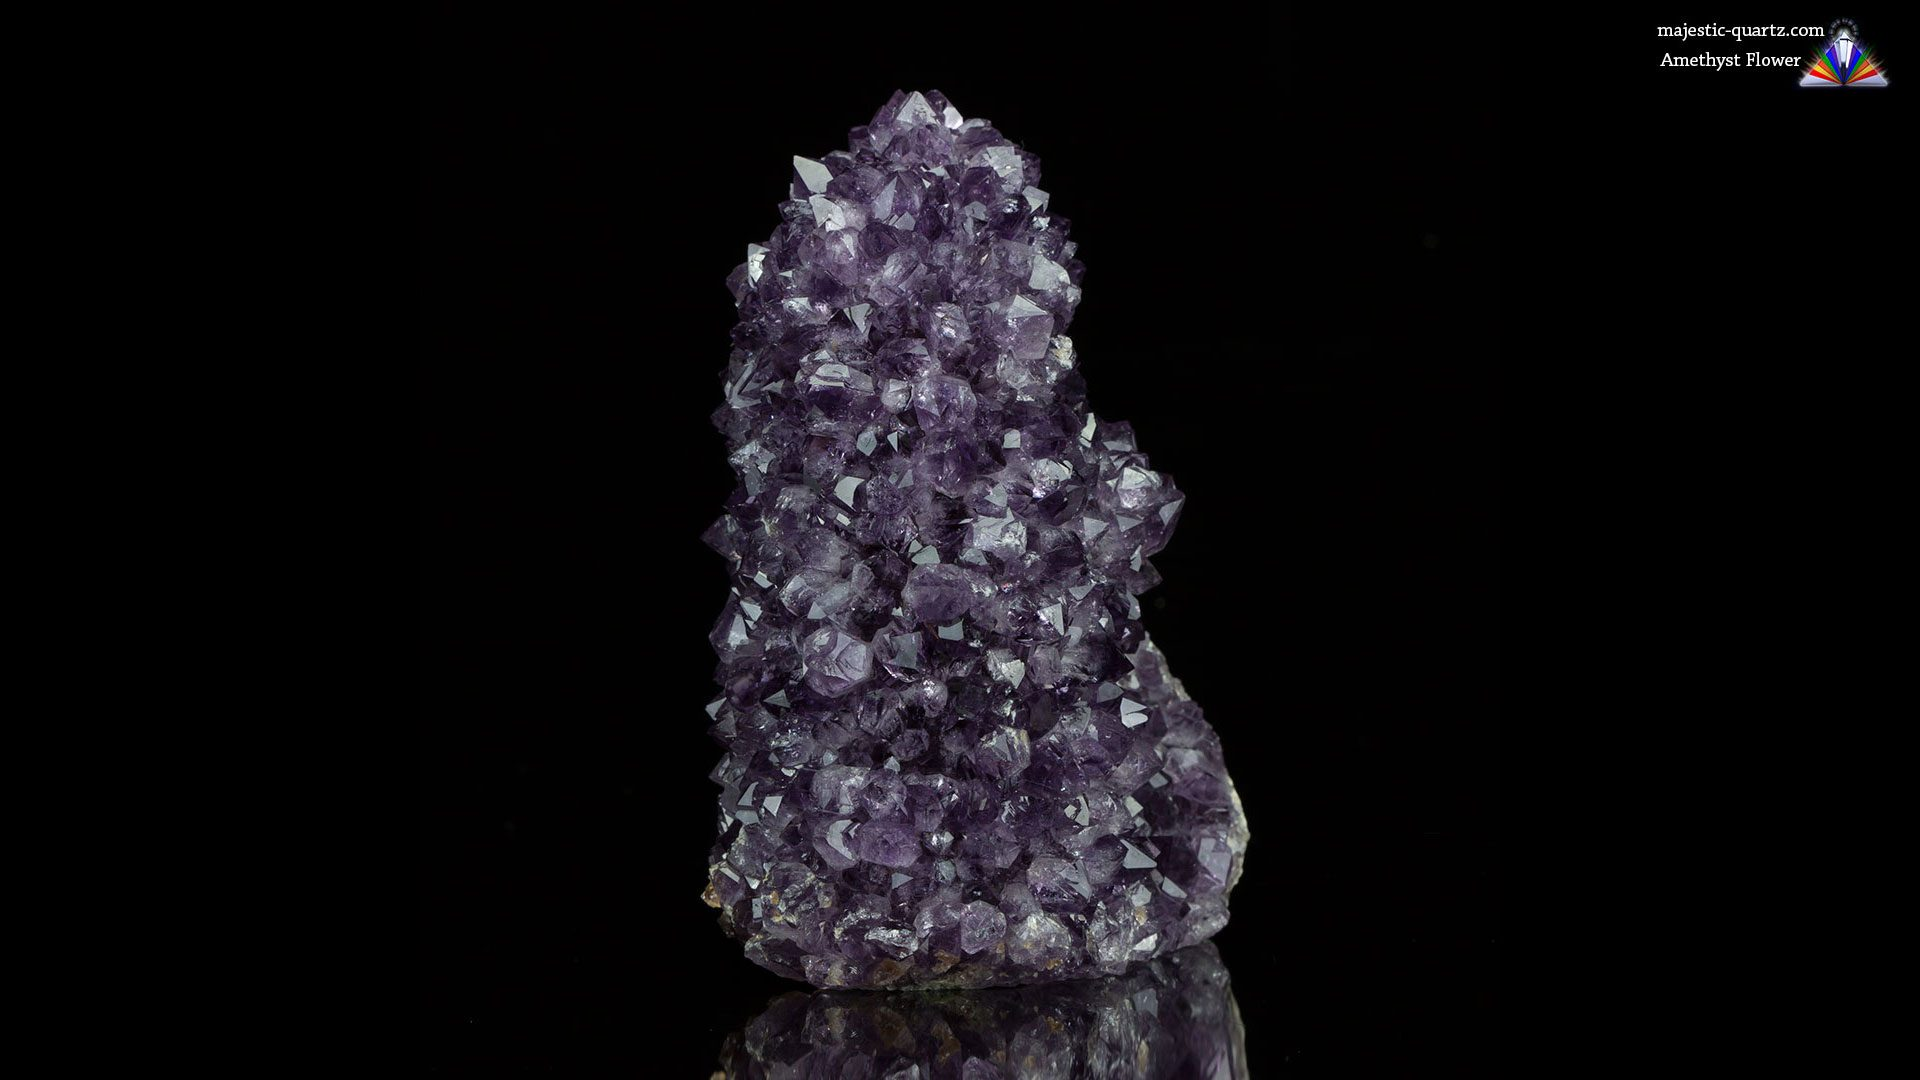 Amethyst Flower Specimen - Photograph by Anthony Bradford